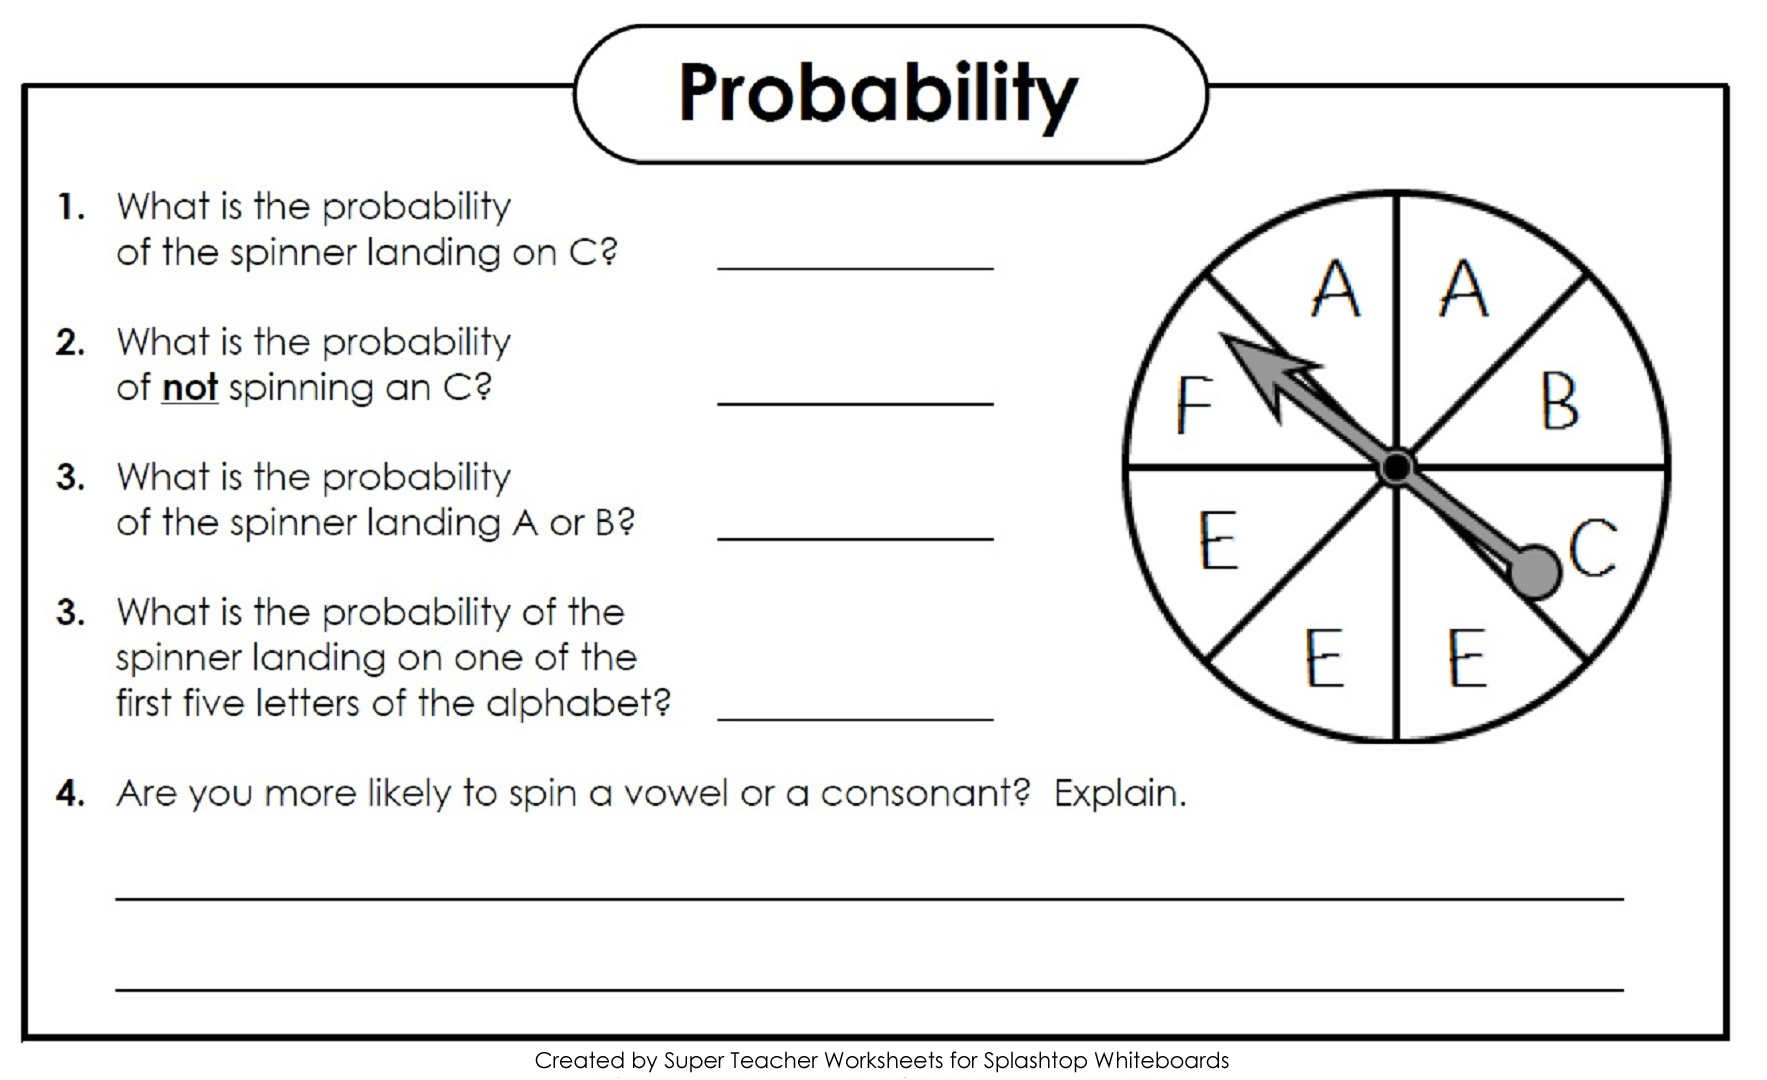 Uncategorized Superteacher Worksheet splashtop whiteboard background graphics probability spinner 2